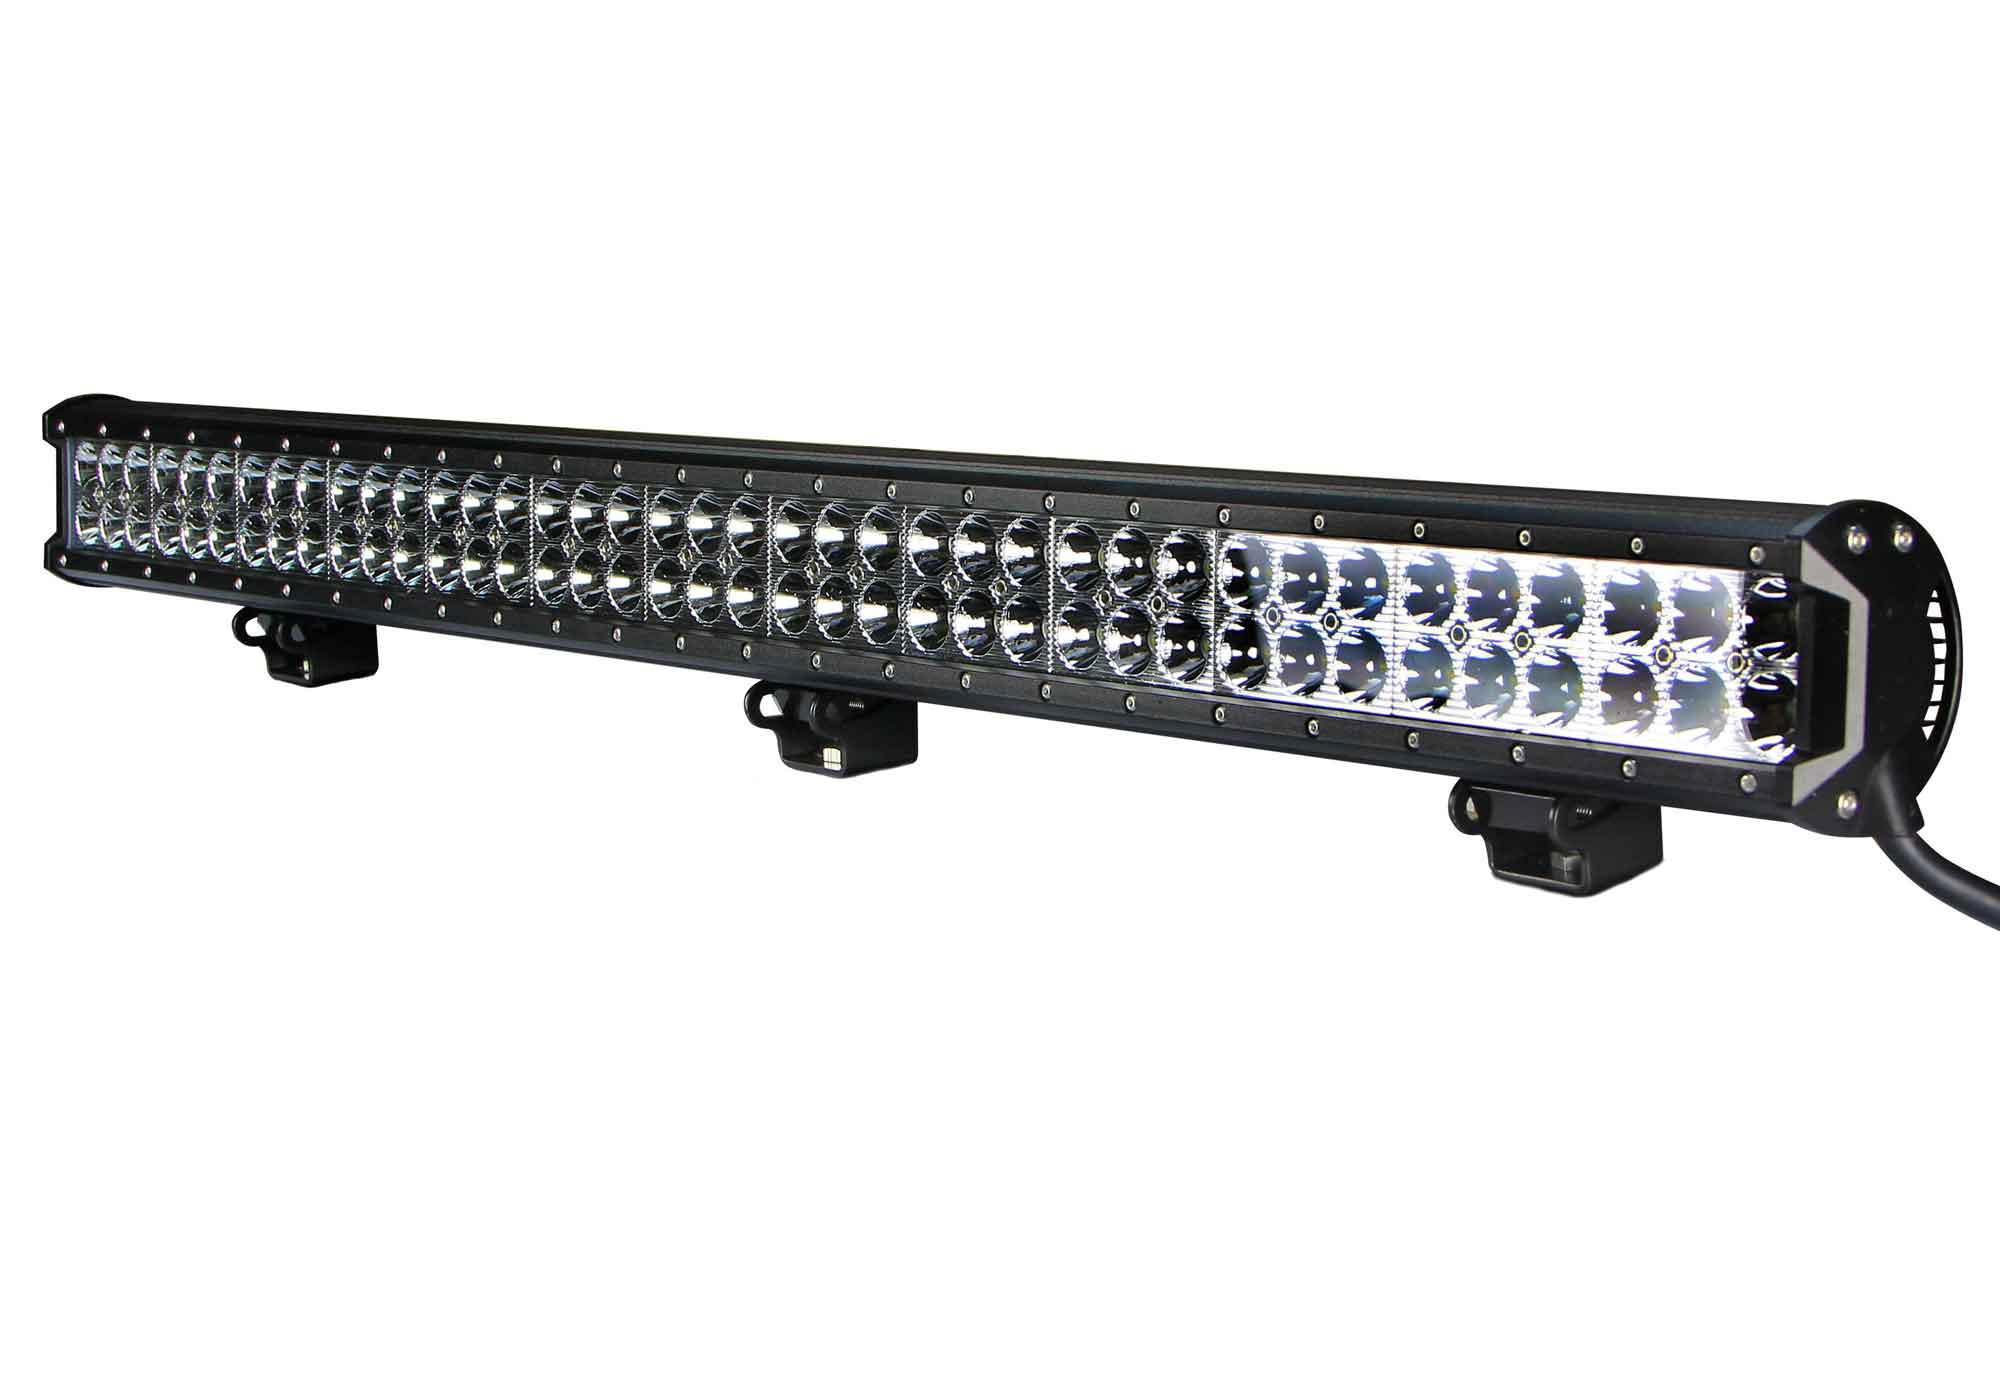 vortex series led light bar 36 inch 234 watt combo tuff led lights. Black Bedroom Furniture Sets. Home Design Ideas